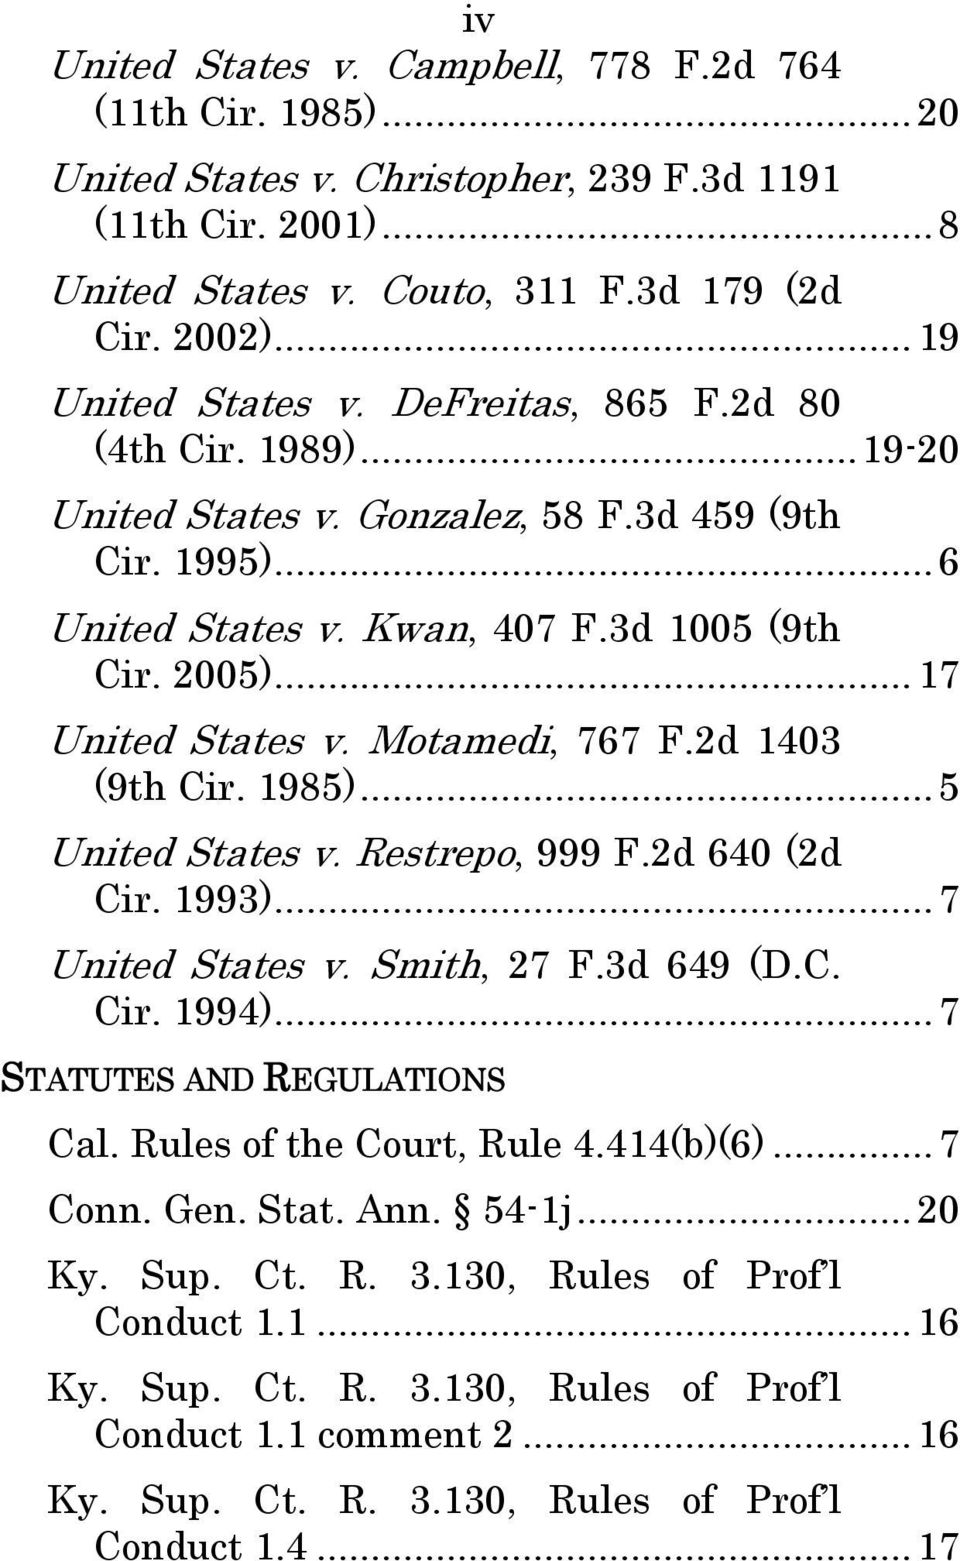 ..17 United States v. Motamedi, 767 F.2d 1403 (9th Cir. 1985)... 5 United States v. Restrepo, 999 F.2d 640 (2d Cir. 1993)... 7 United States v. Smith, 27 F.3d 649 (D.C. Cir. 1994).